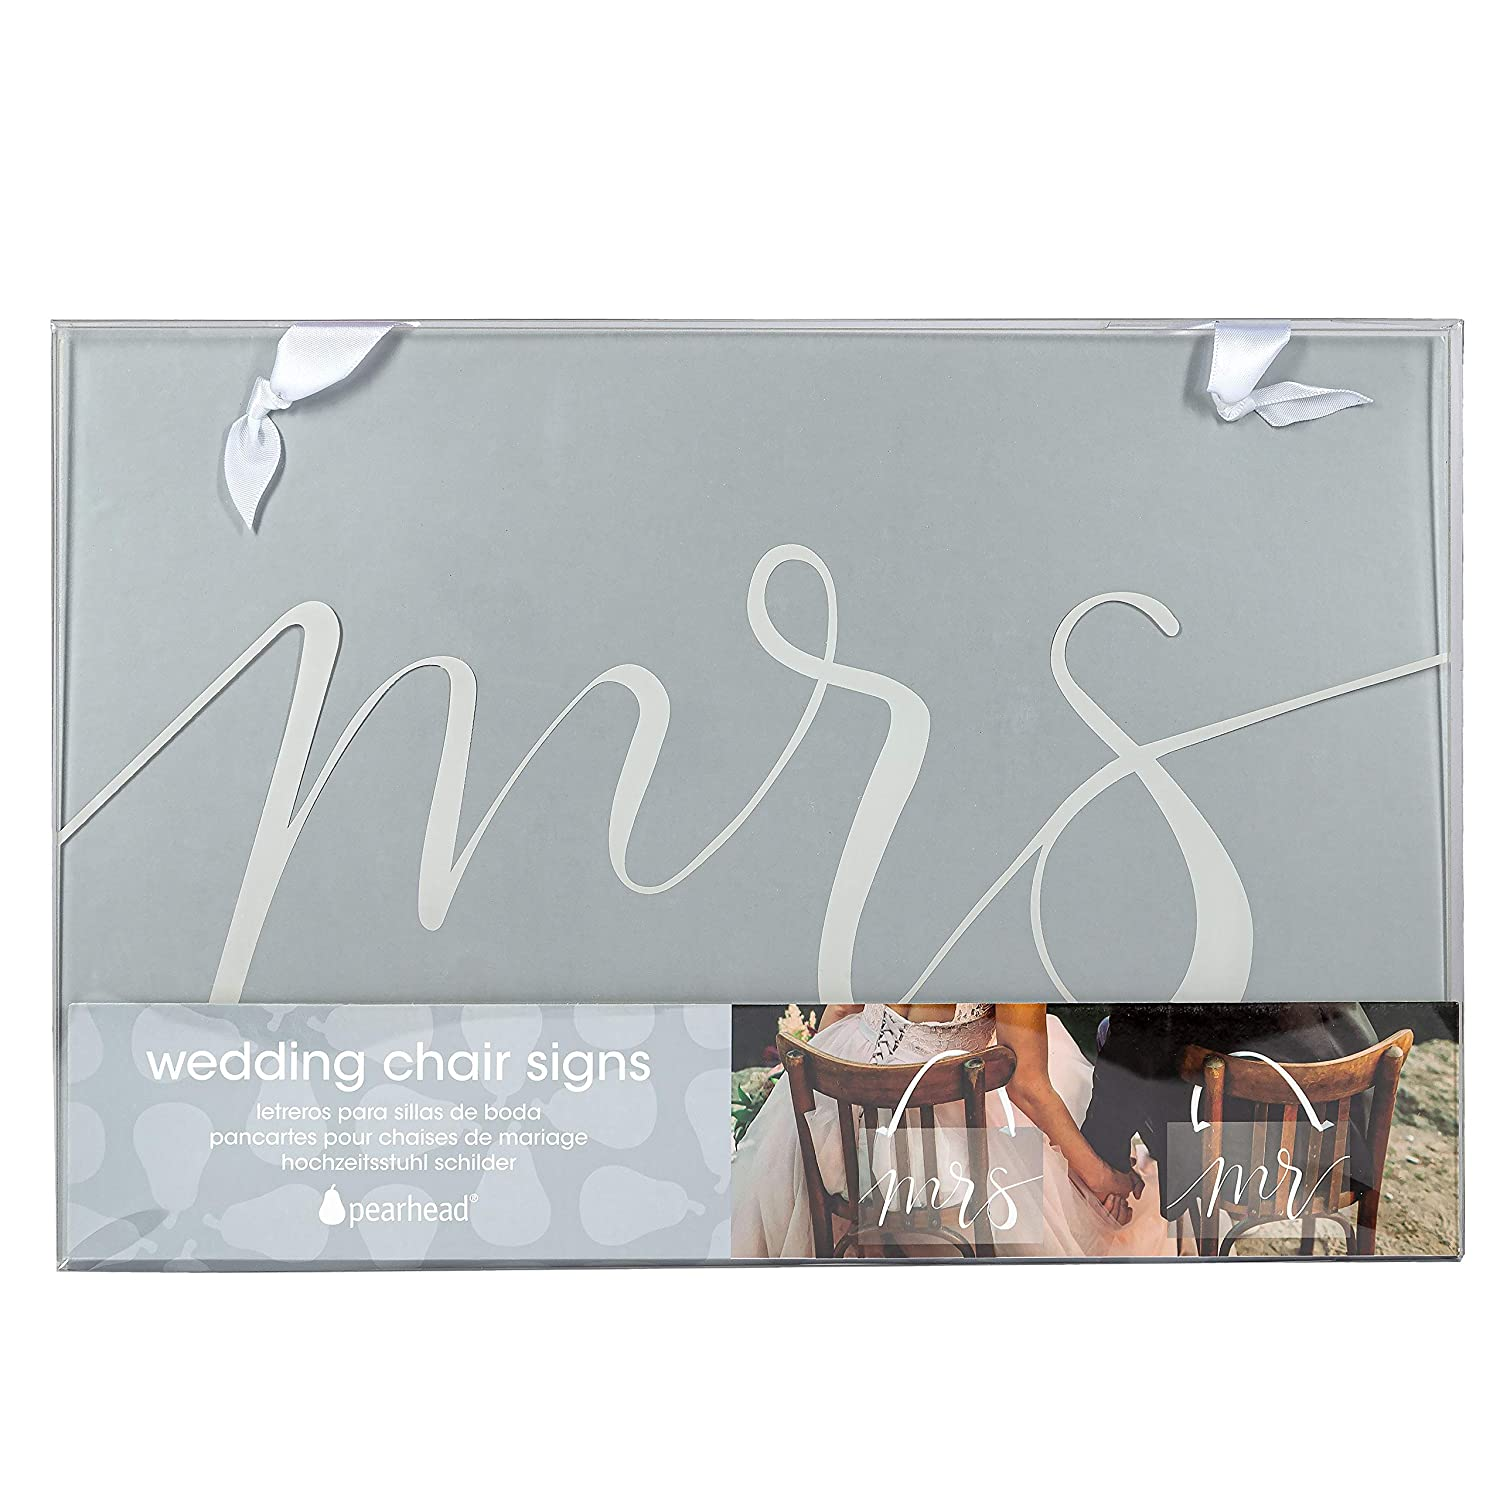 Mr. and Mrs. Matching Wedding Chair Hanging Signs, Wedding Reception Décor or Photo Prop, Great Gift for a Bride-to-Be, White on Transparent